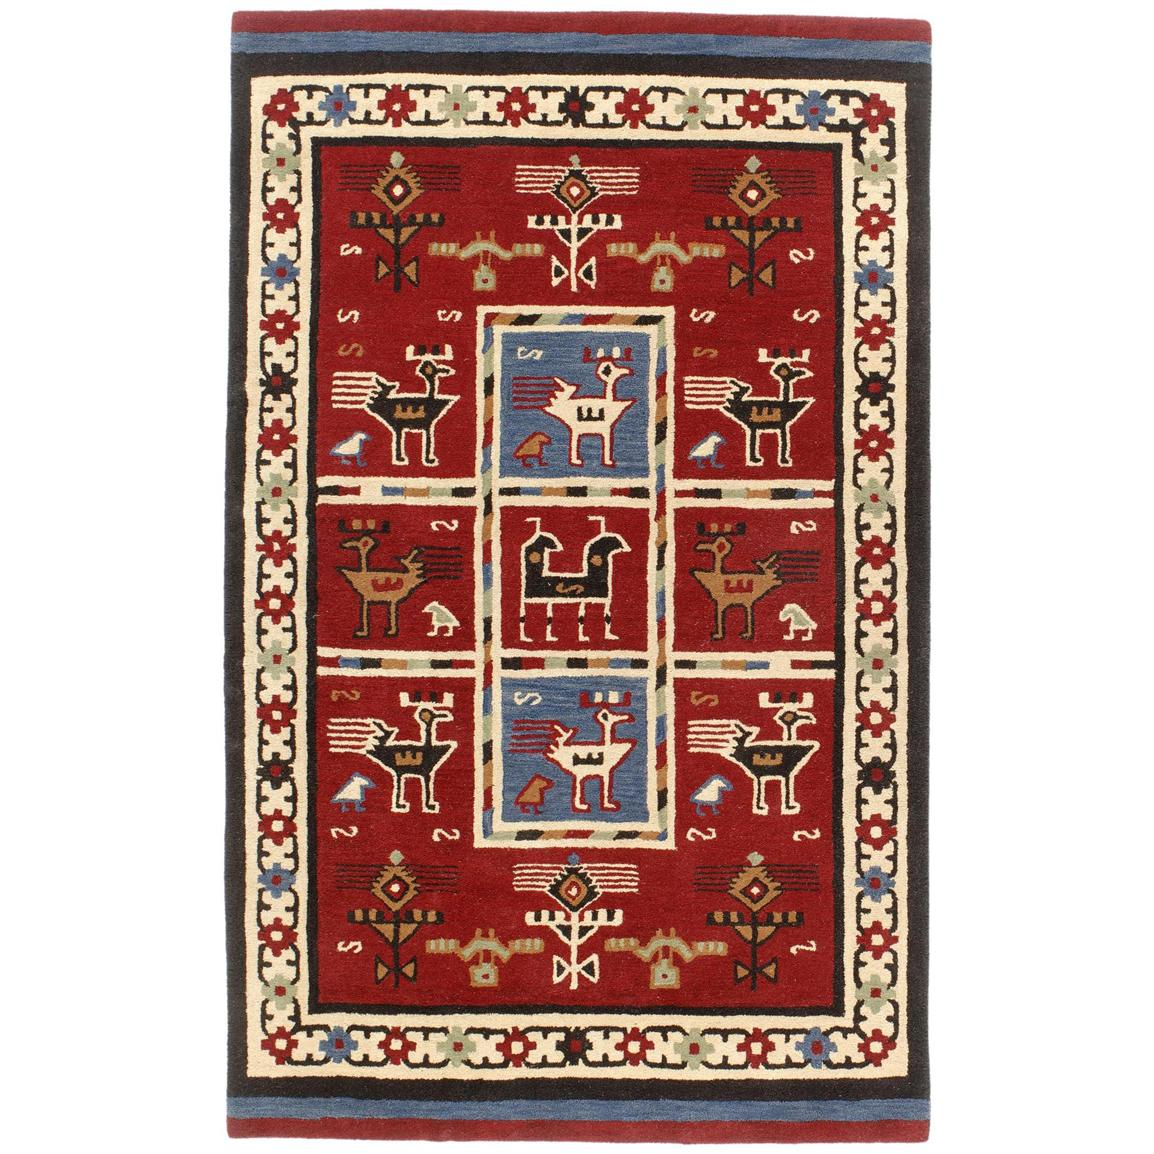 Handmade Wool Tribal Rug 4x6 169001 Rugs At Sportsman